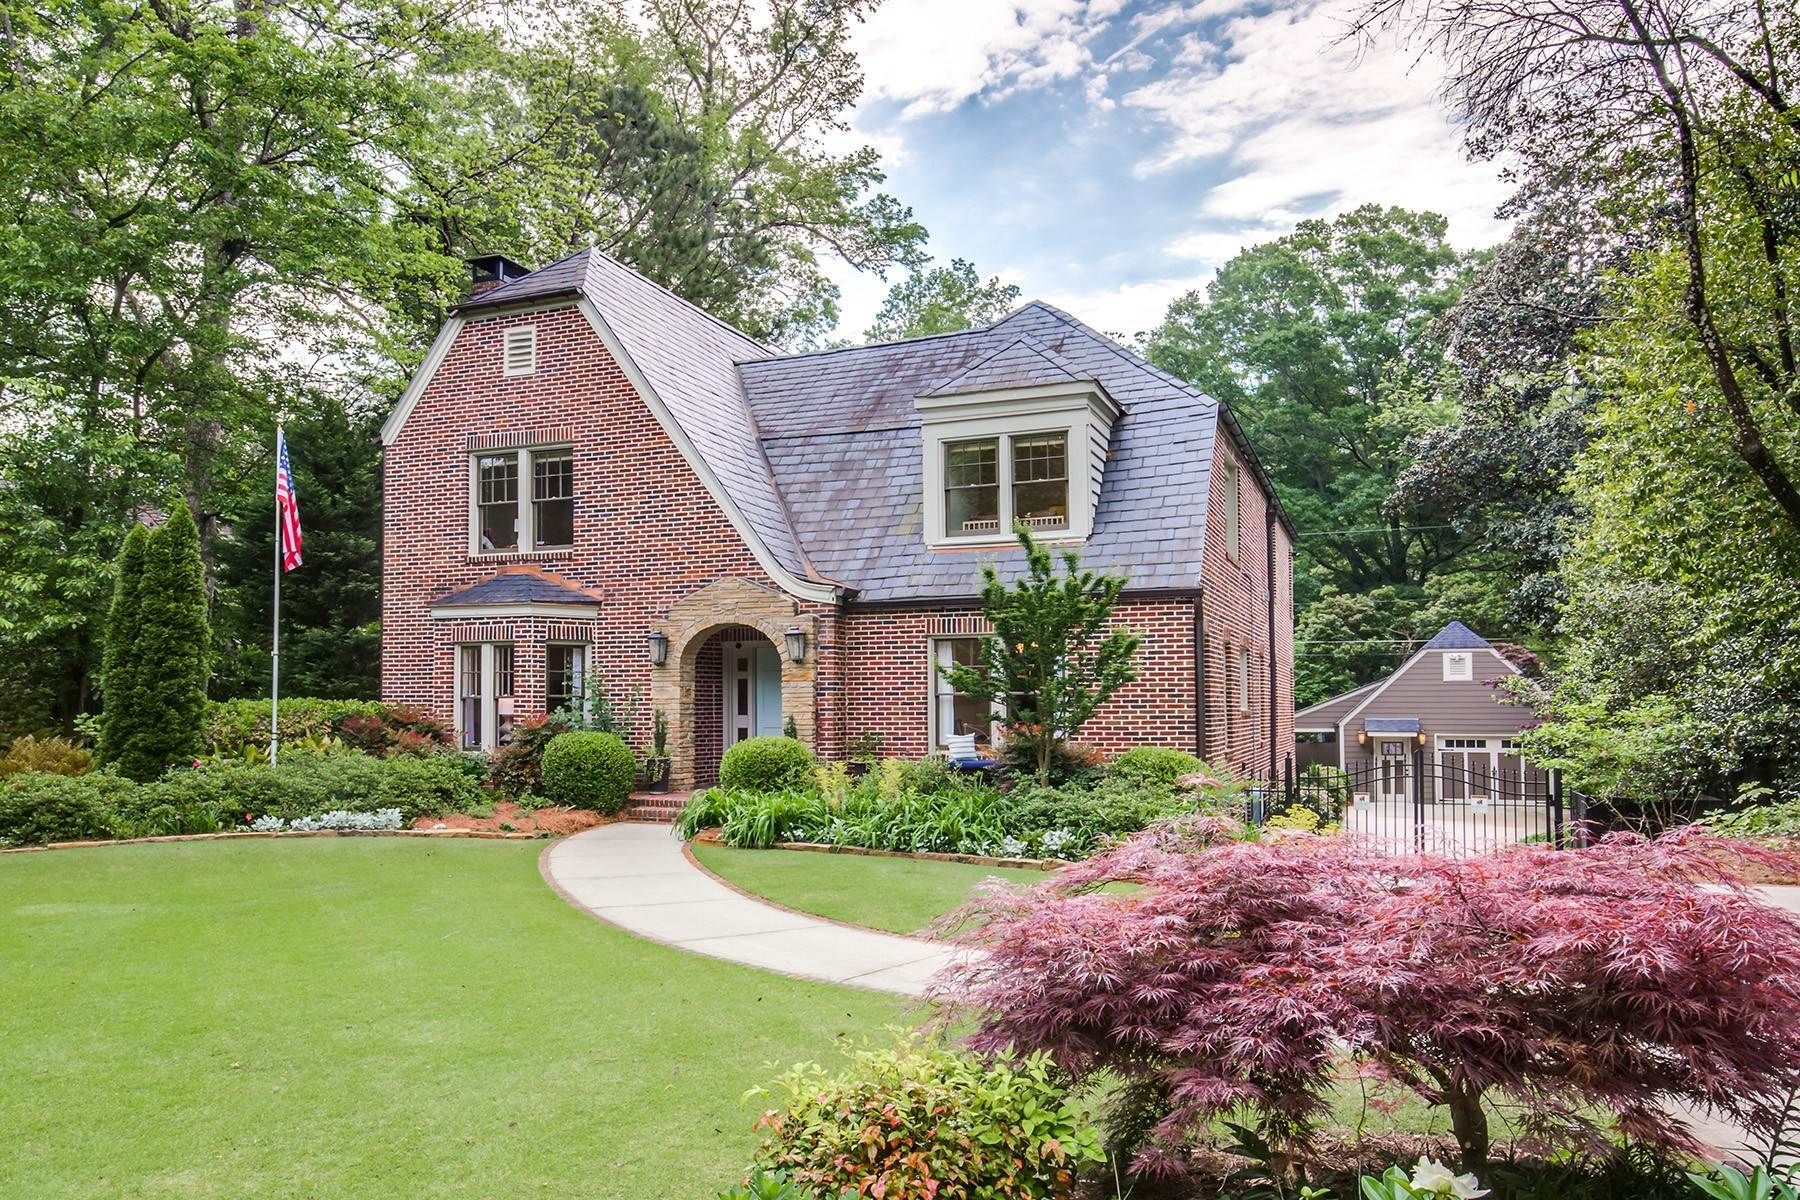 Single Family Homes for Sale at Enticing Synthesis Of 1929 Historic Character And Charm 1199 Oxford Road NE Atlanta, Georgia 30306 United States